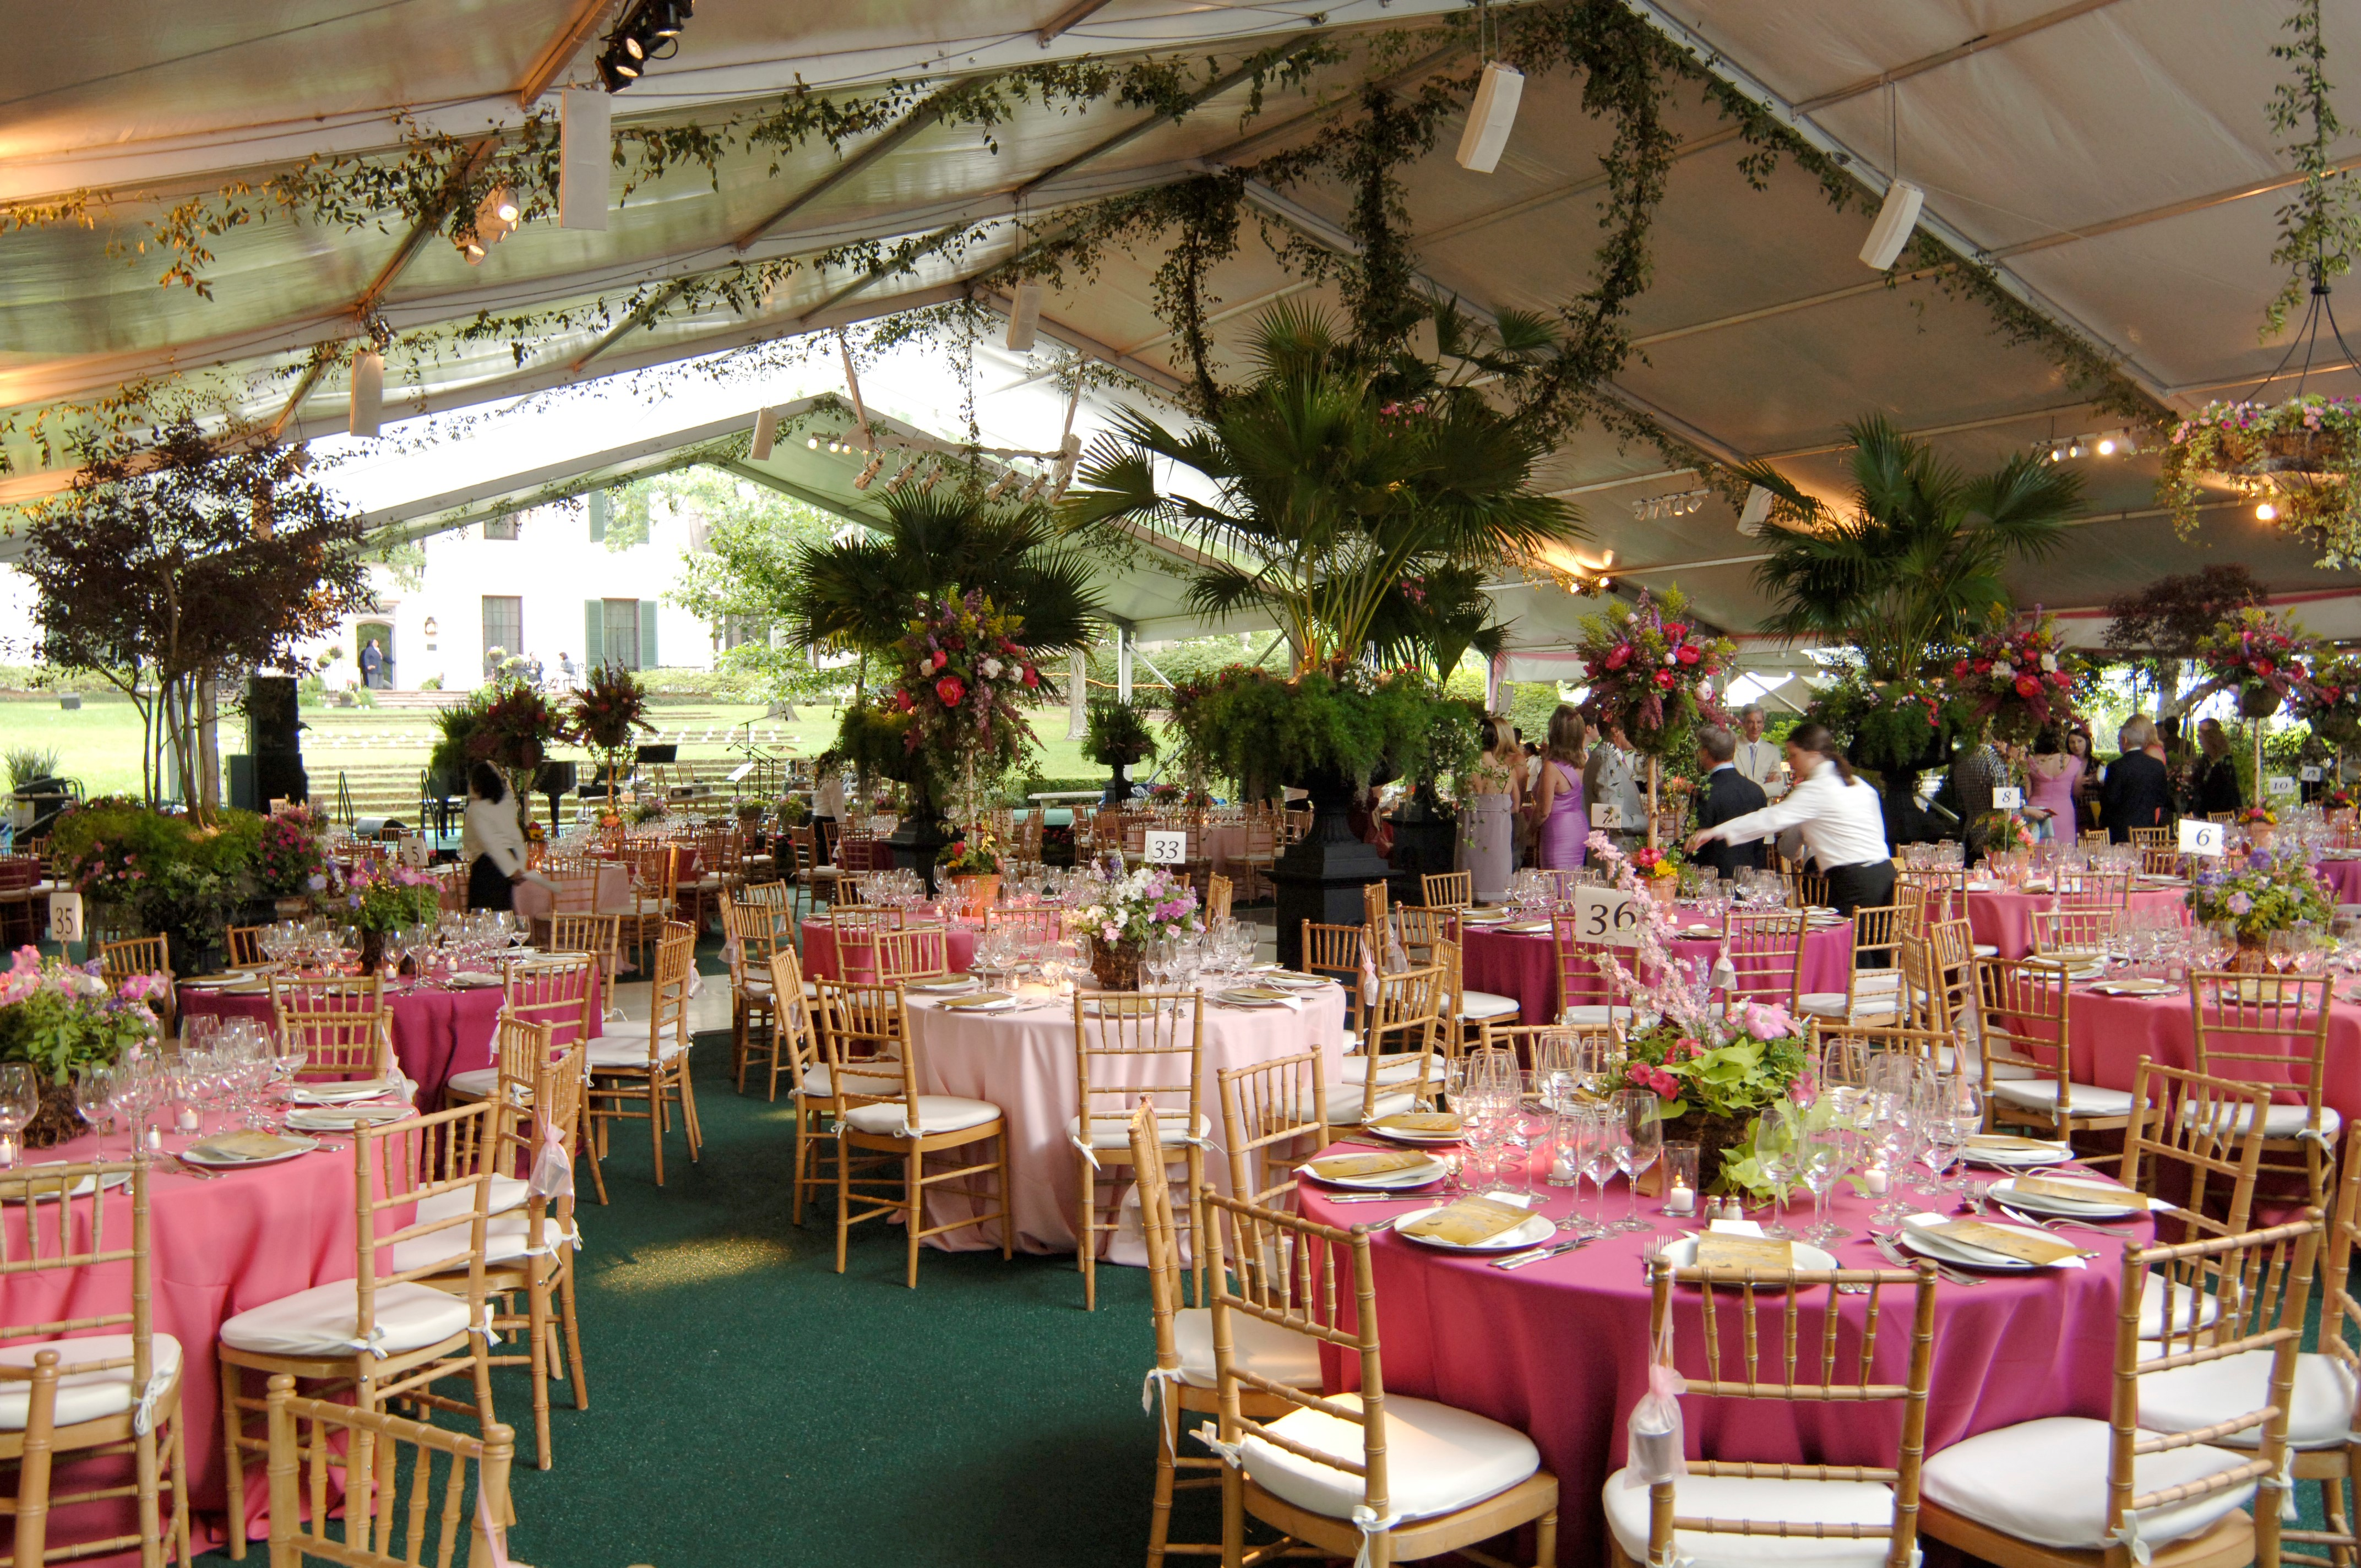 Facility Rentals At Bayou Bend The Museum Of Fine Arts Houston